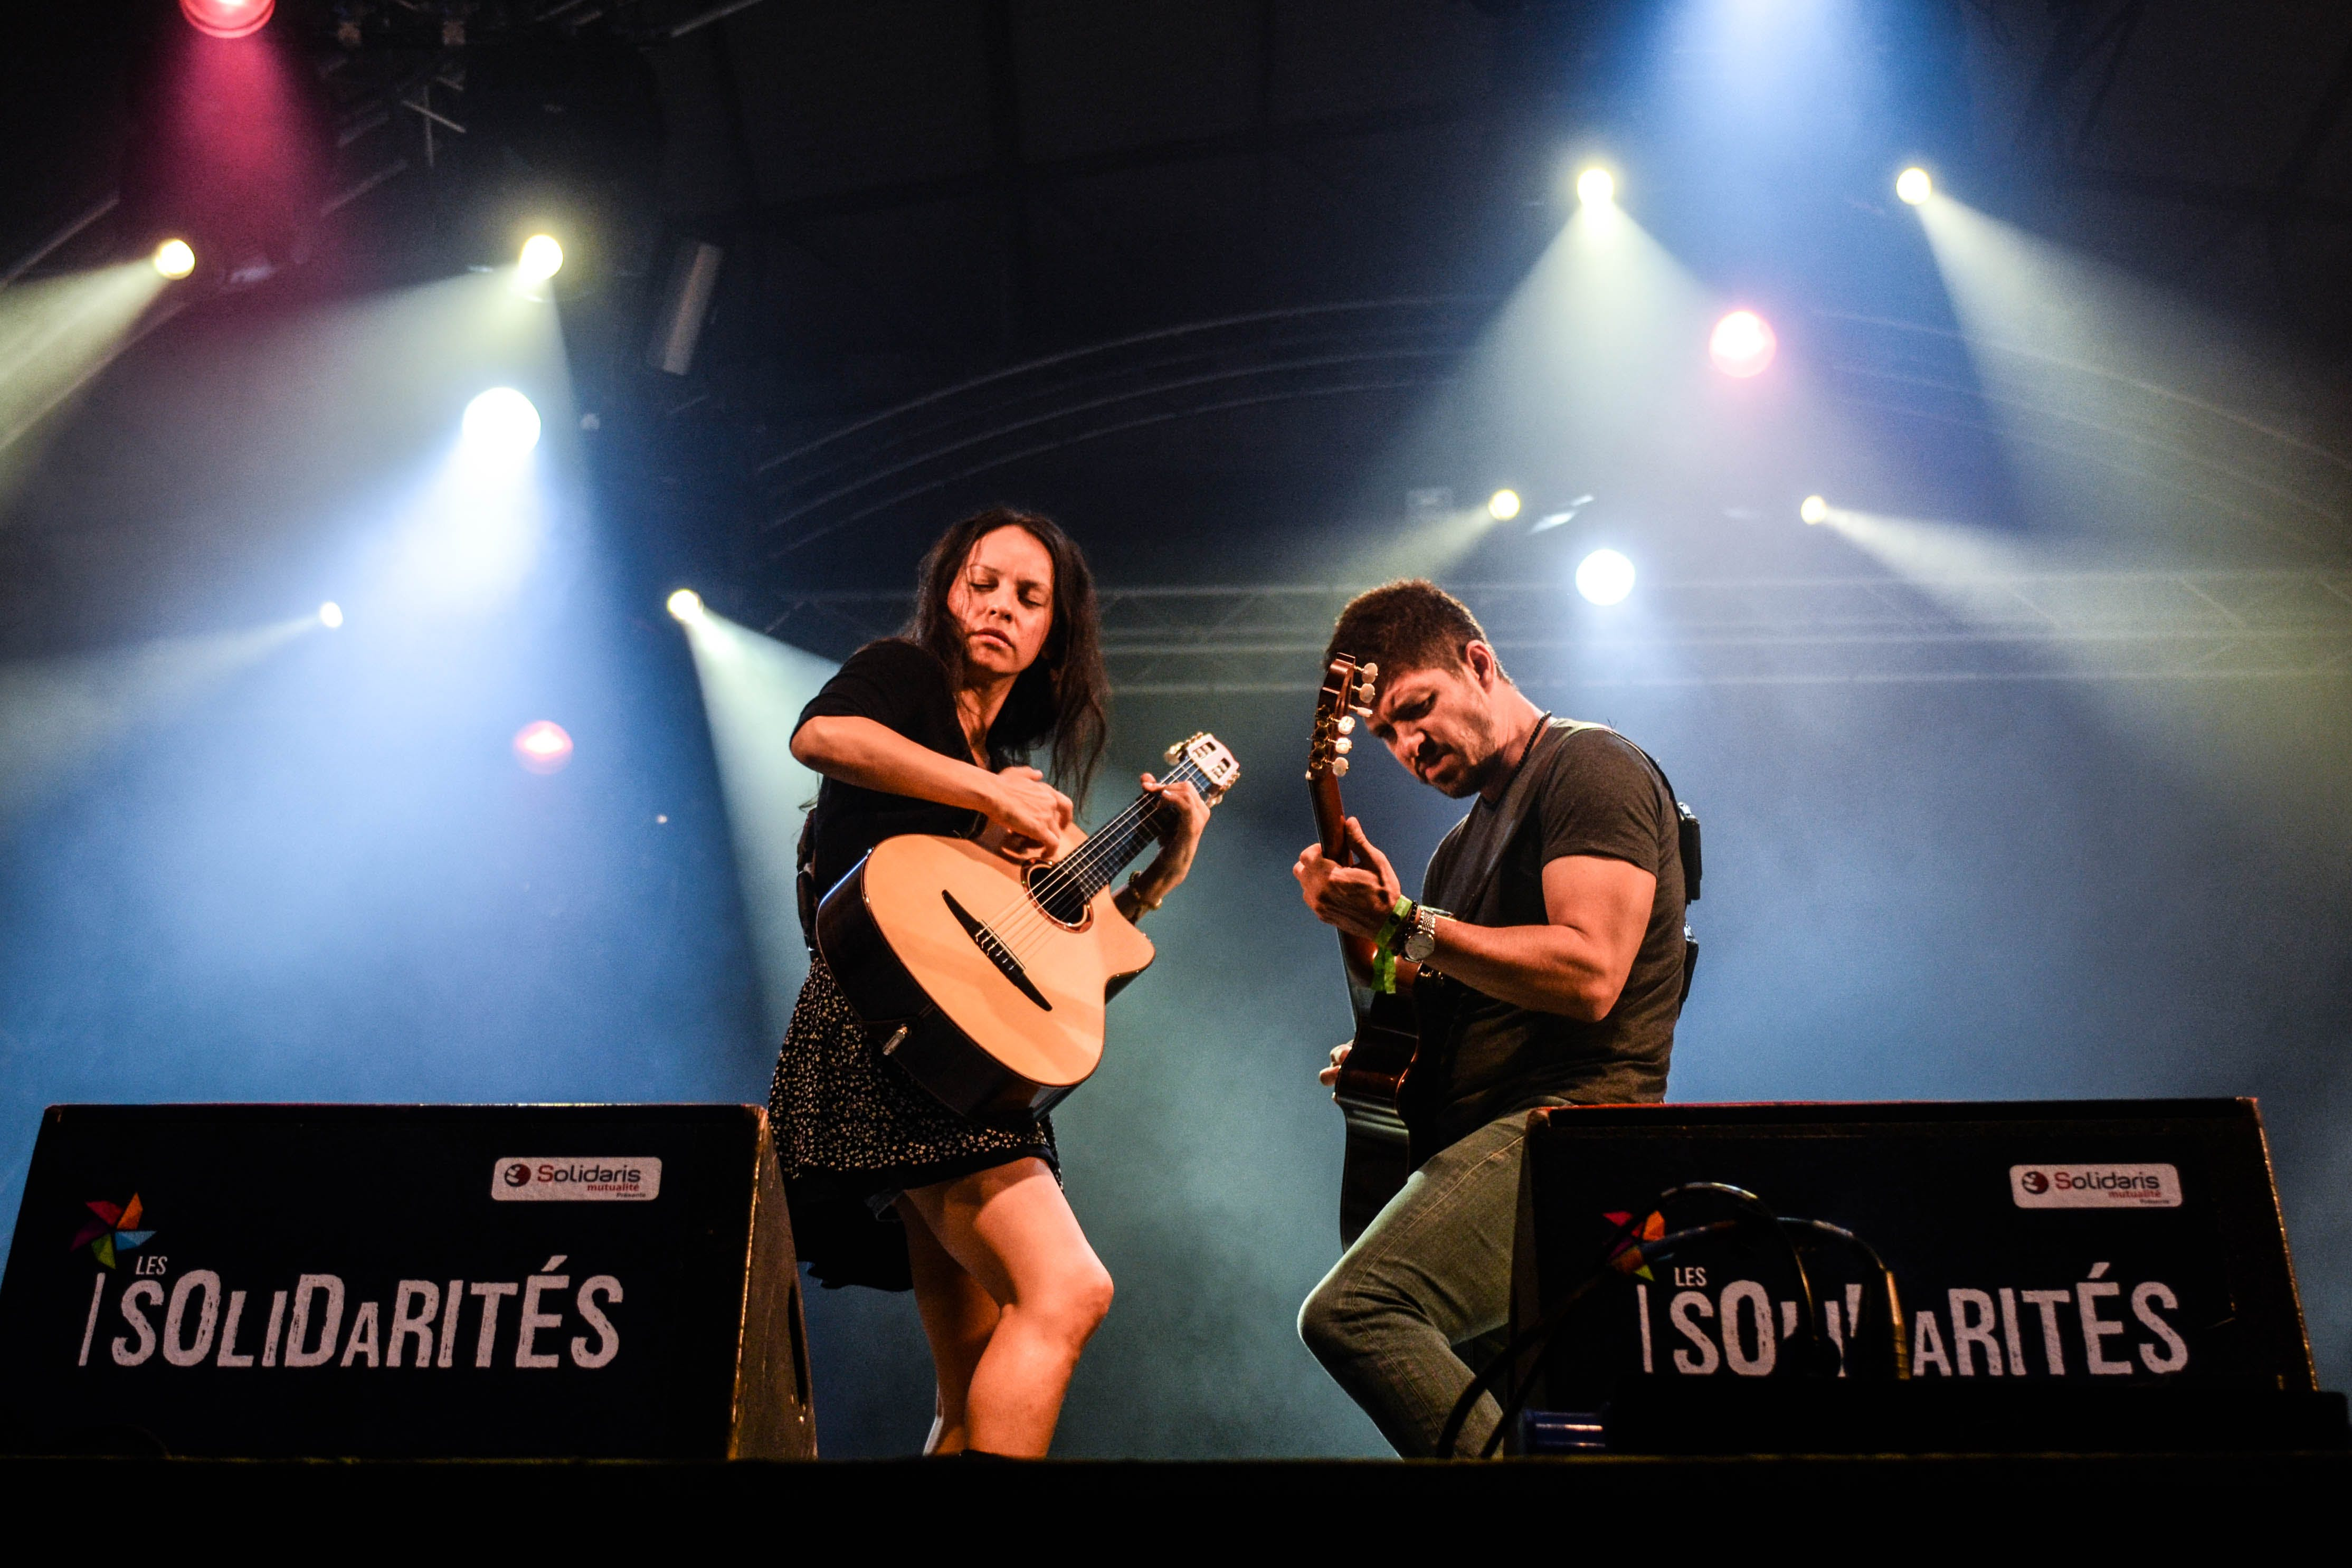 Man and Woman Playing Guitar on Stage at Solidarites